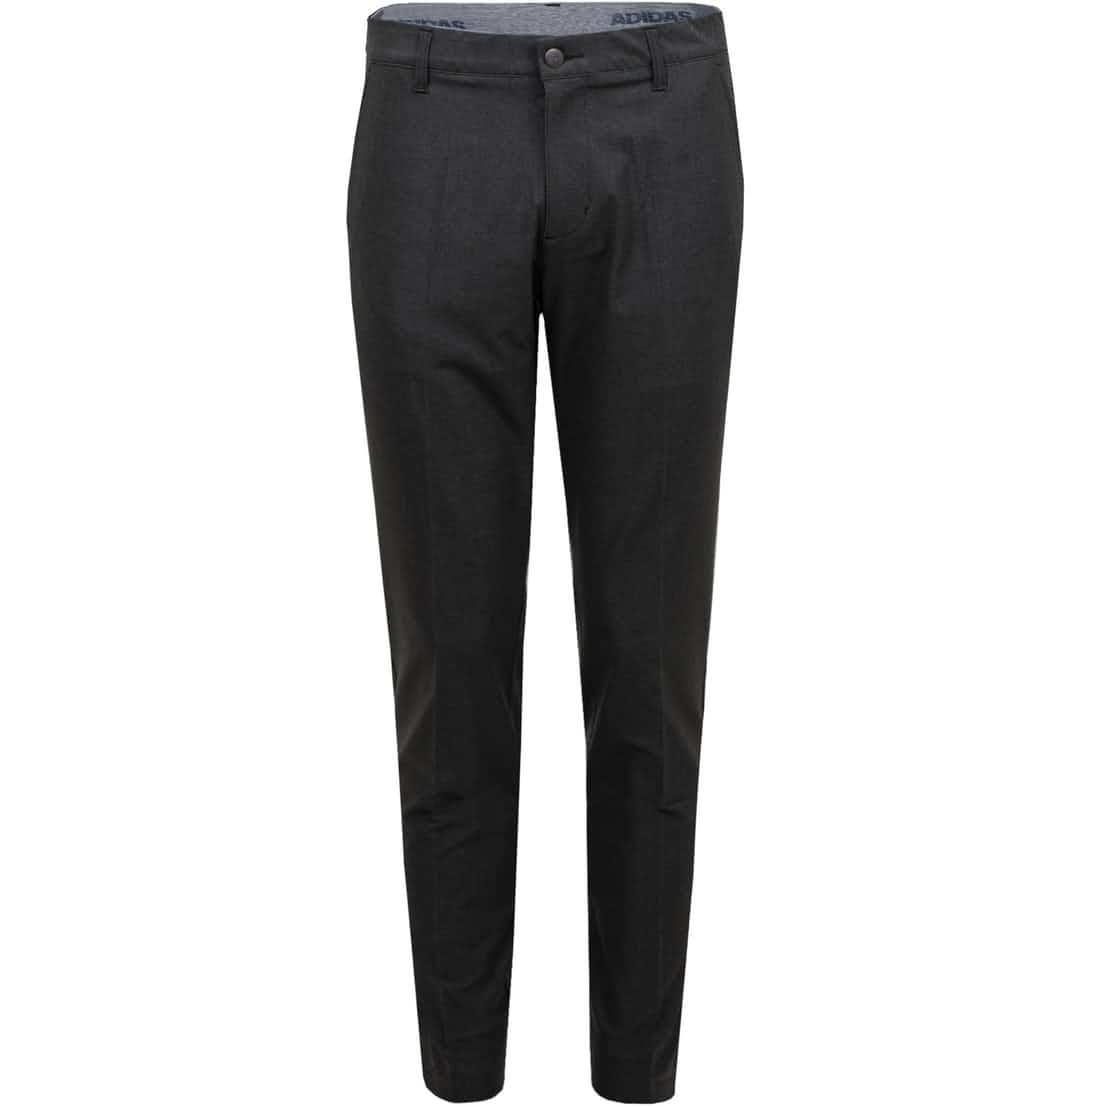 Ultimate 365 Herringbone Pants Legend Earth - AW20